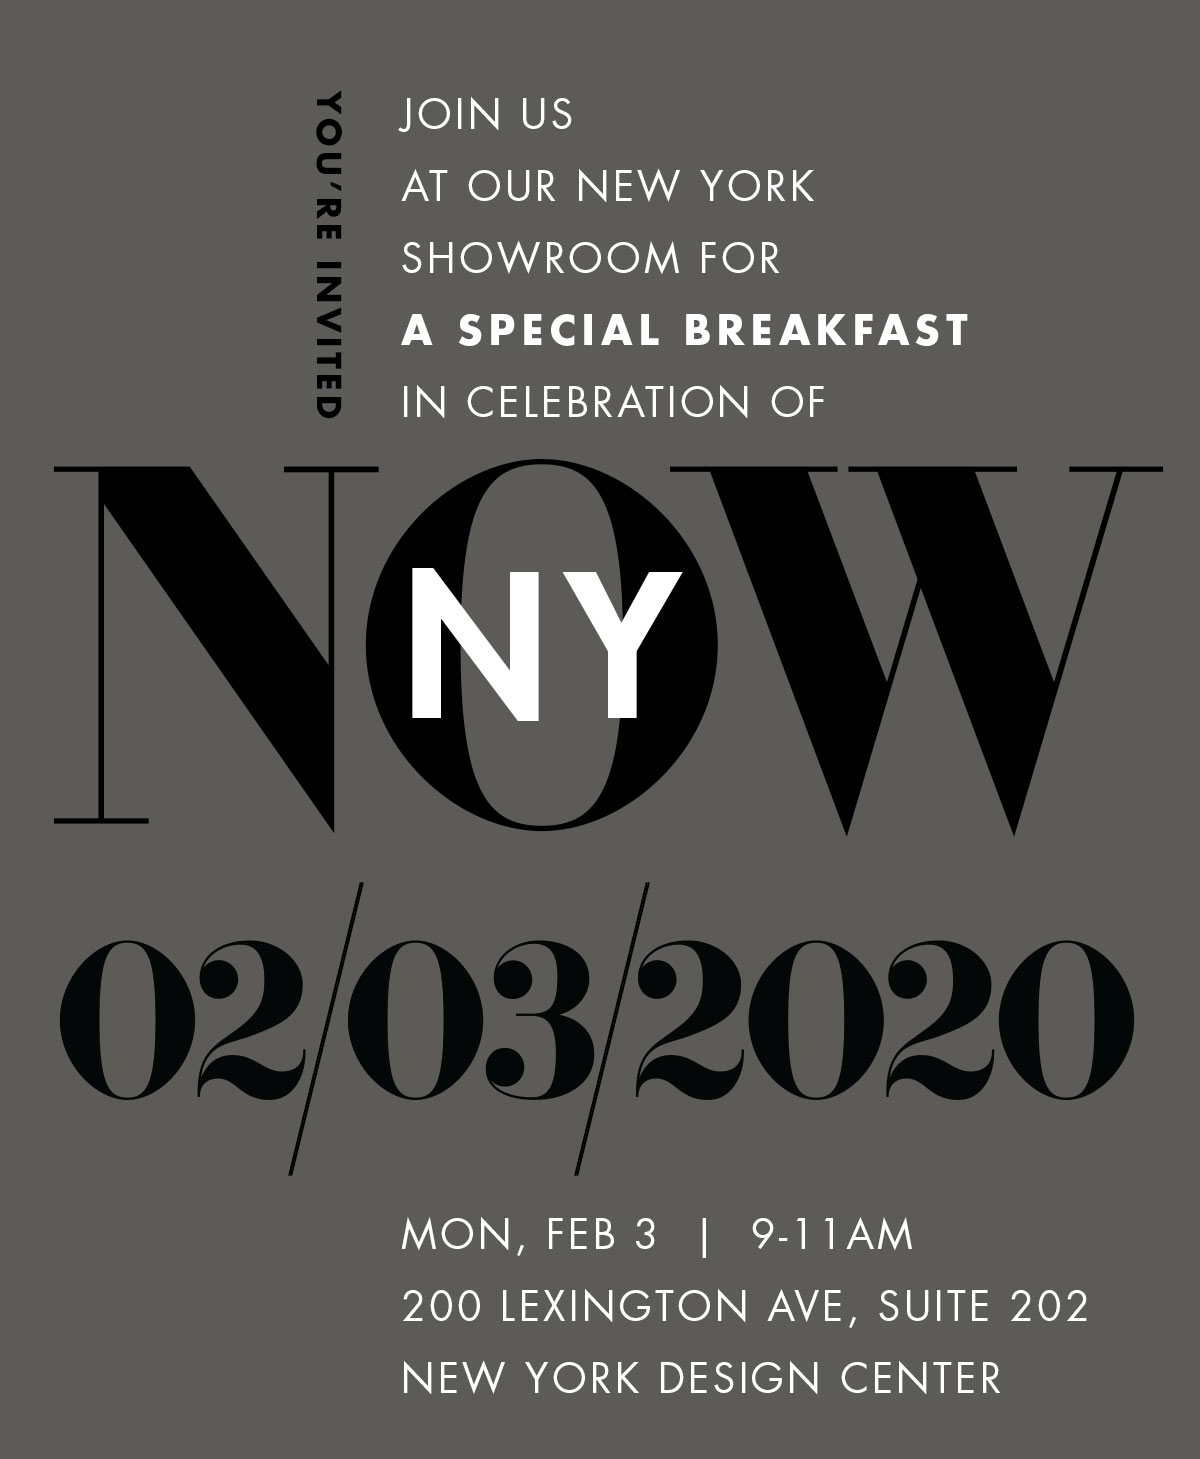 DMISC-5019-17_Master_Content_Calendar_Breakout_1-22_NY_NOW_Breakfast_Invite_option_01